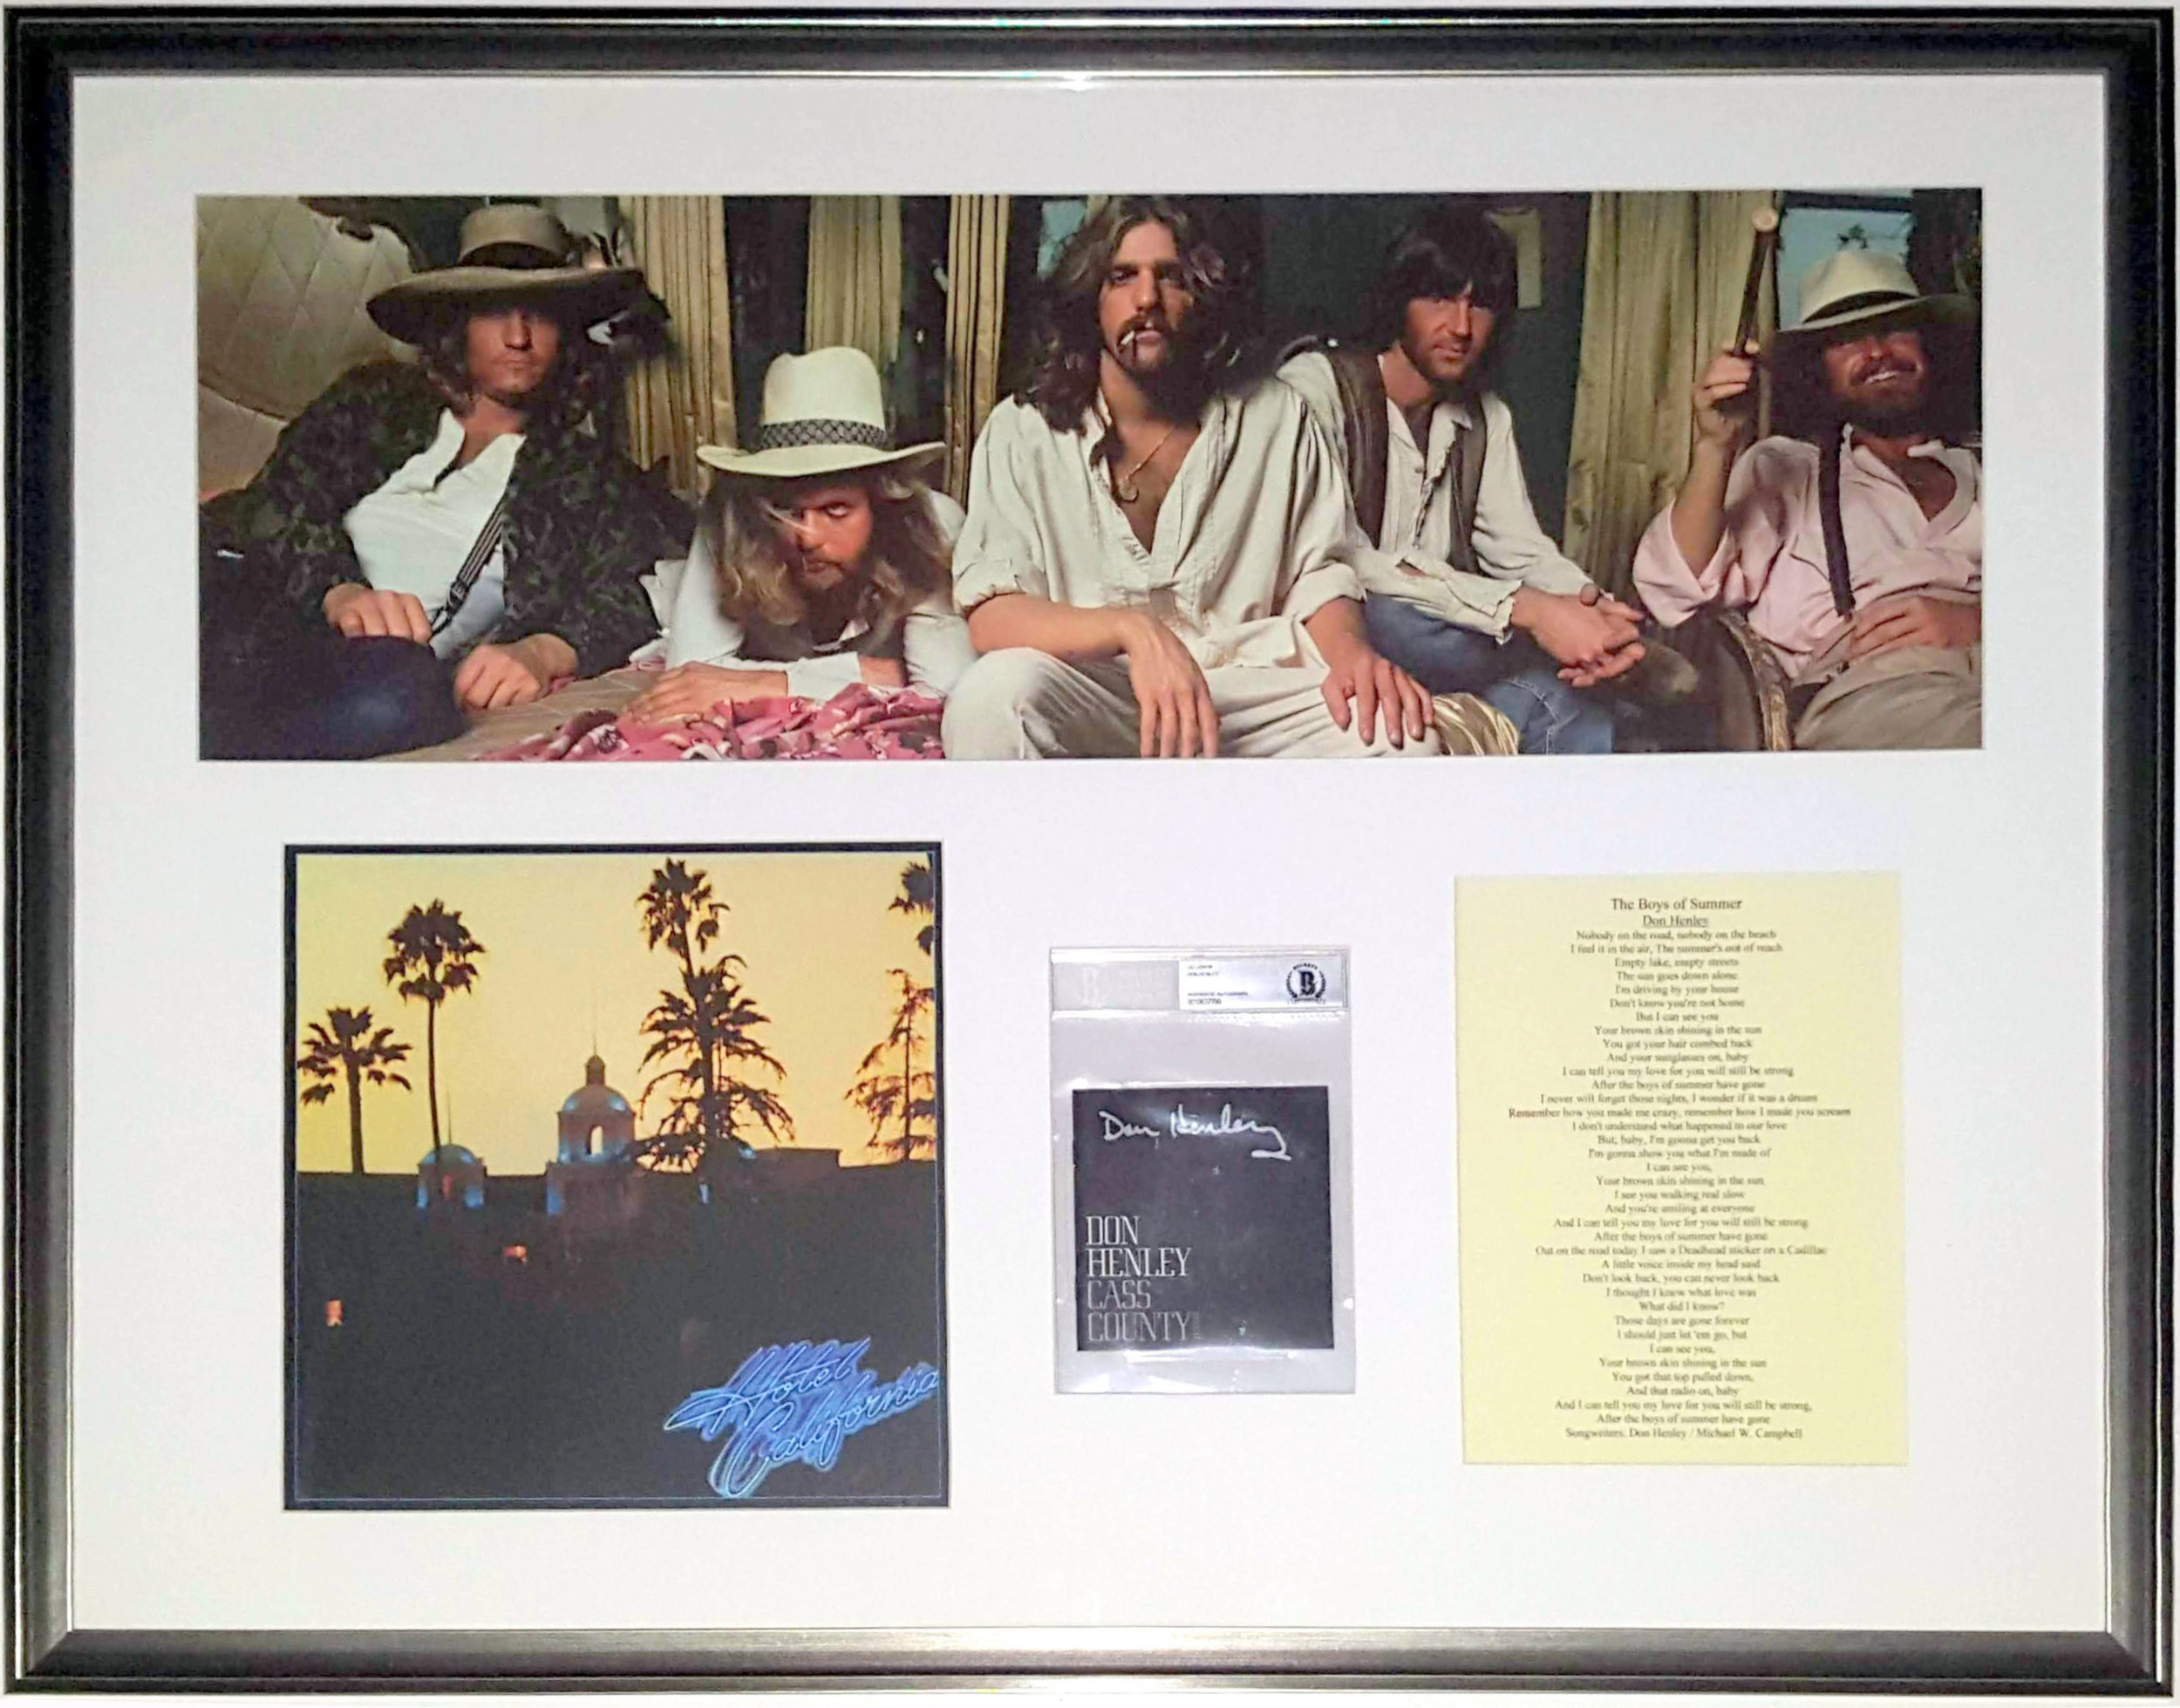 Don Henley Signed Eagles Hotel California Album Compilation - Beckett Authentication Services COA - Professionally Framed 38x30